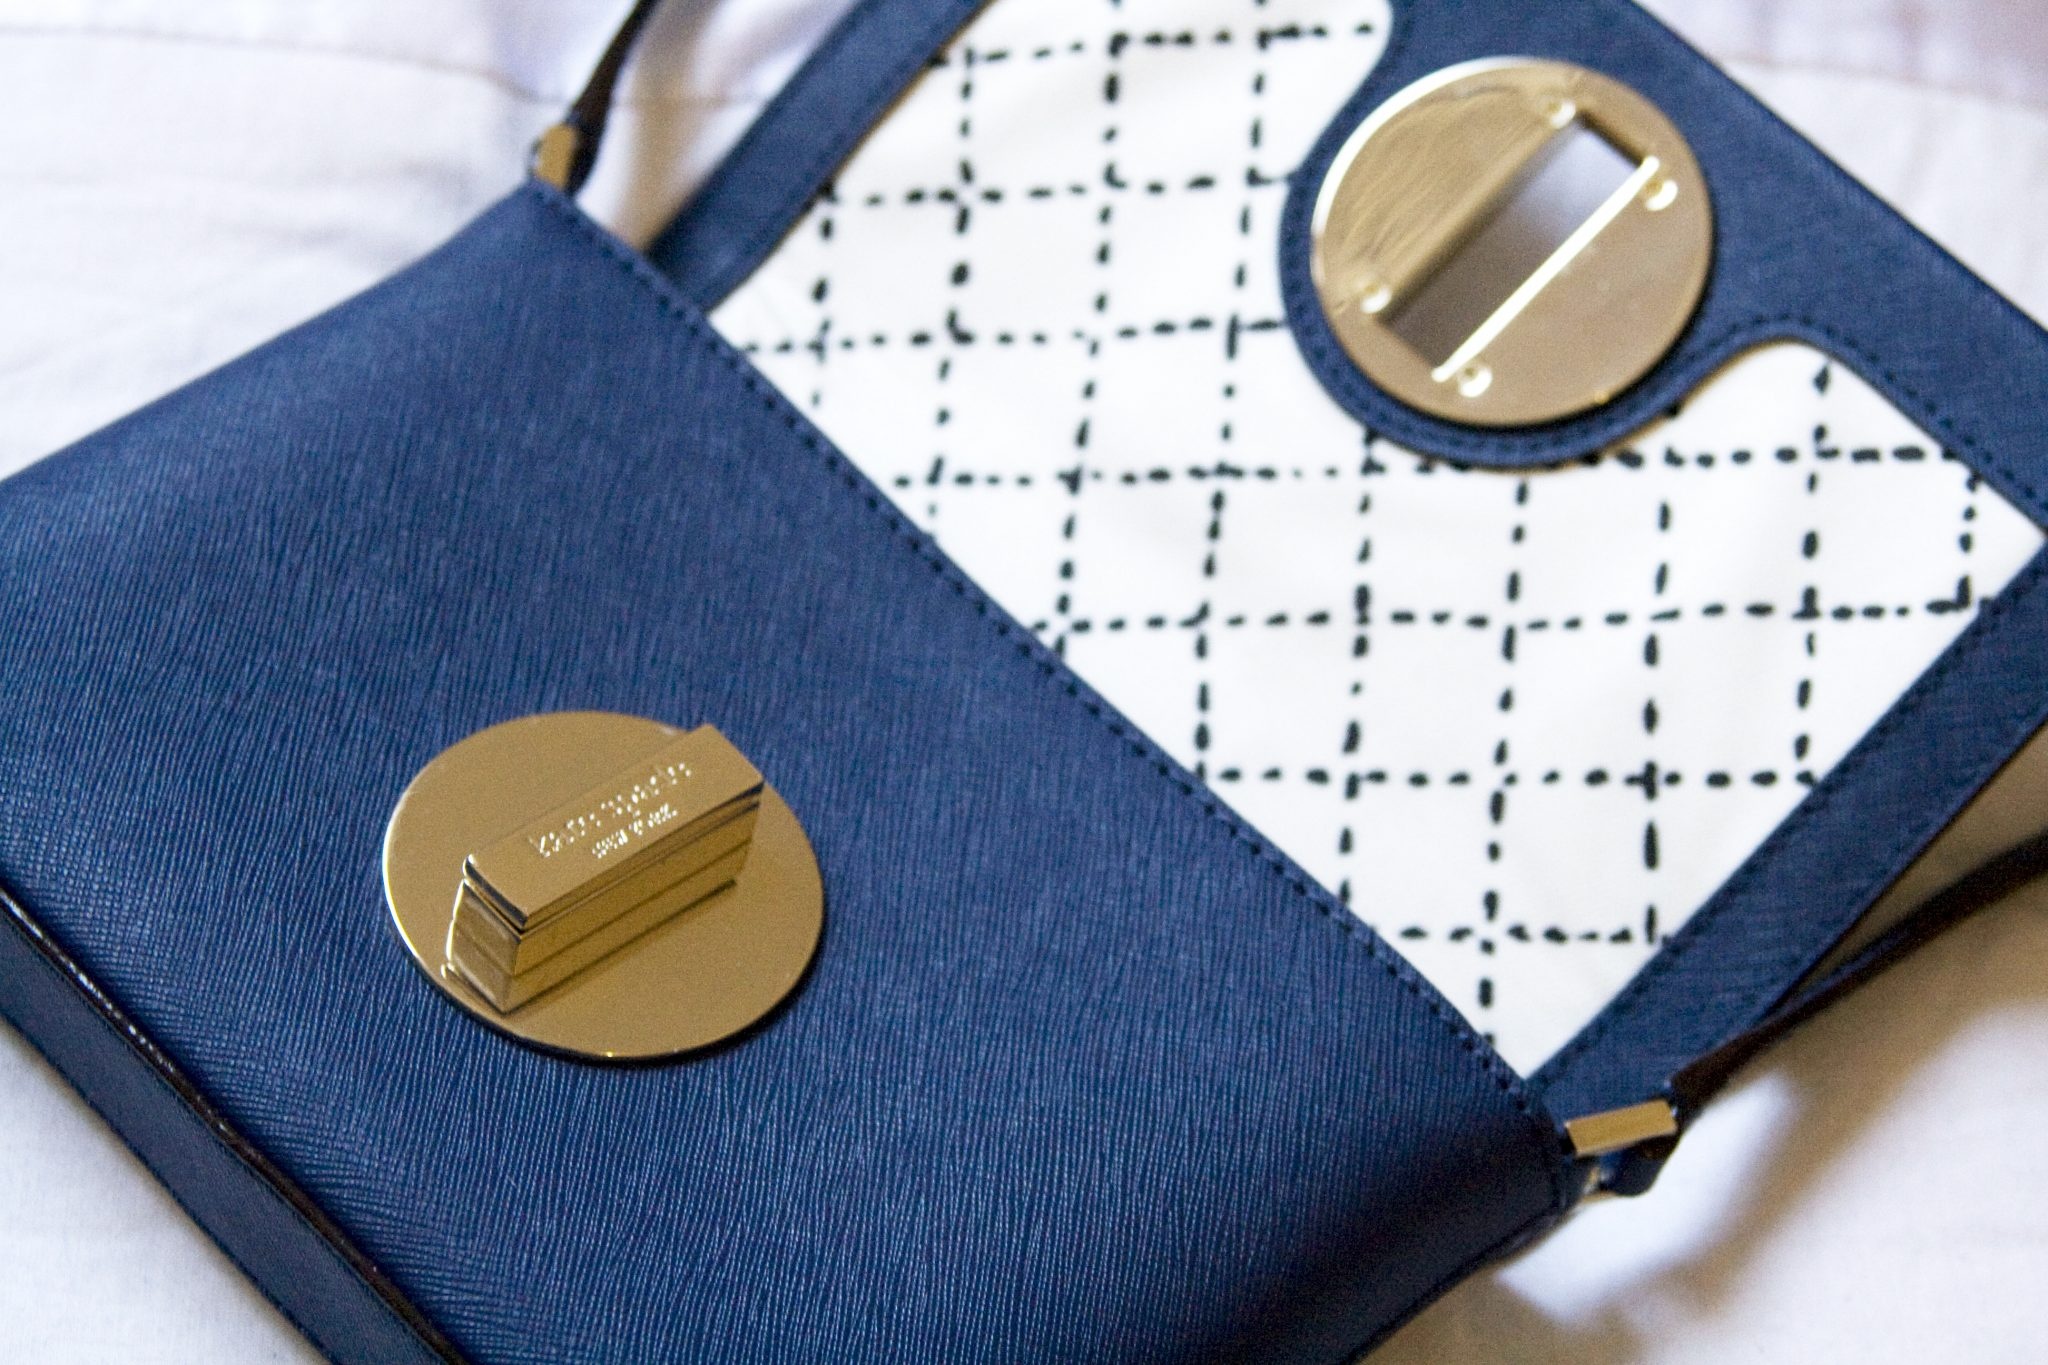 Kate Spade Sally Crossbody Handbag Purse Midnight Blue. Manchester based lifestyle and fashion blogger. Orlando, Florida.